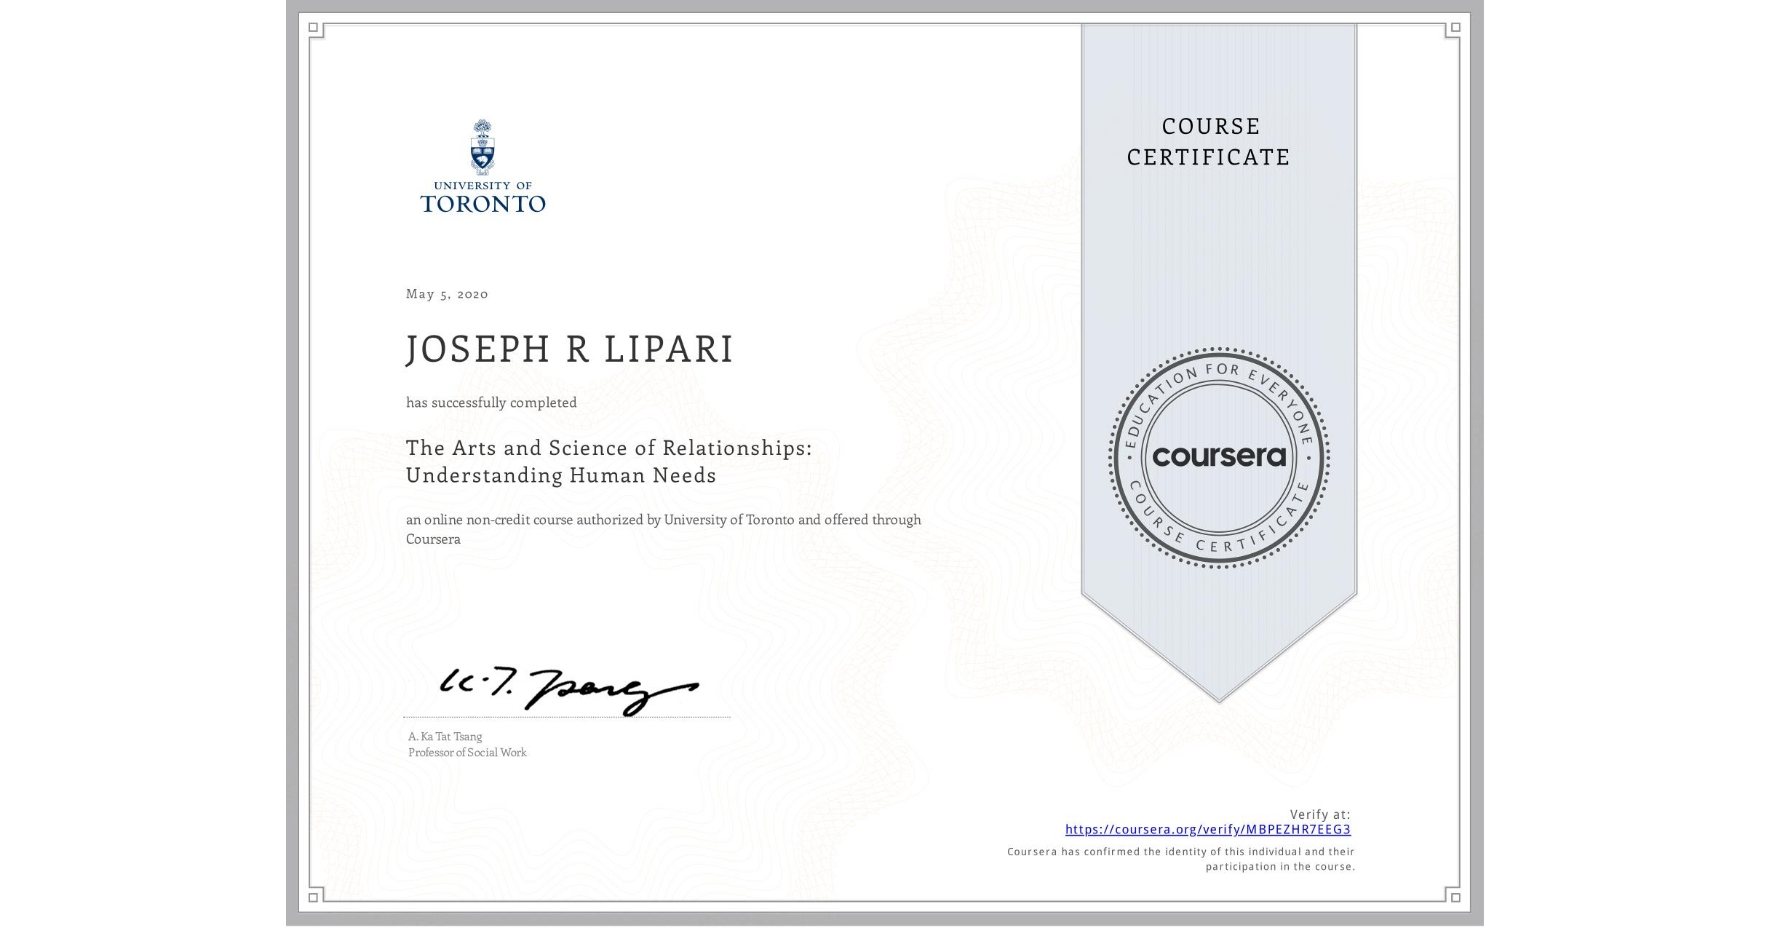 View certificate for JOSEPH R  LIPARI, The Arts and Science of Relationships: Understanding Human Needs, an online non-credit course authorized by University of Toronto and offered through Coursera